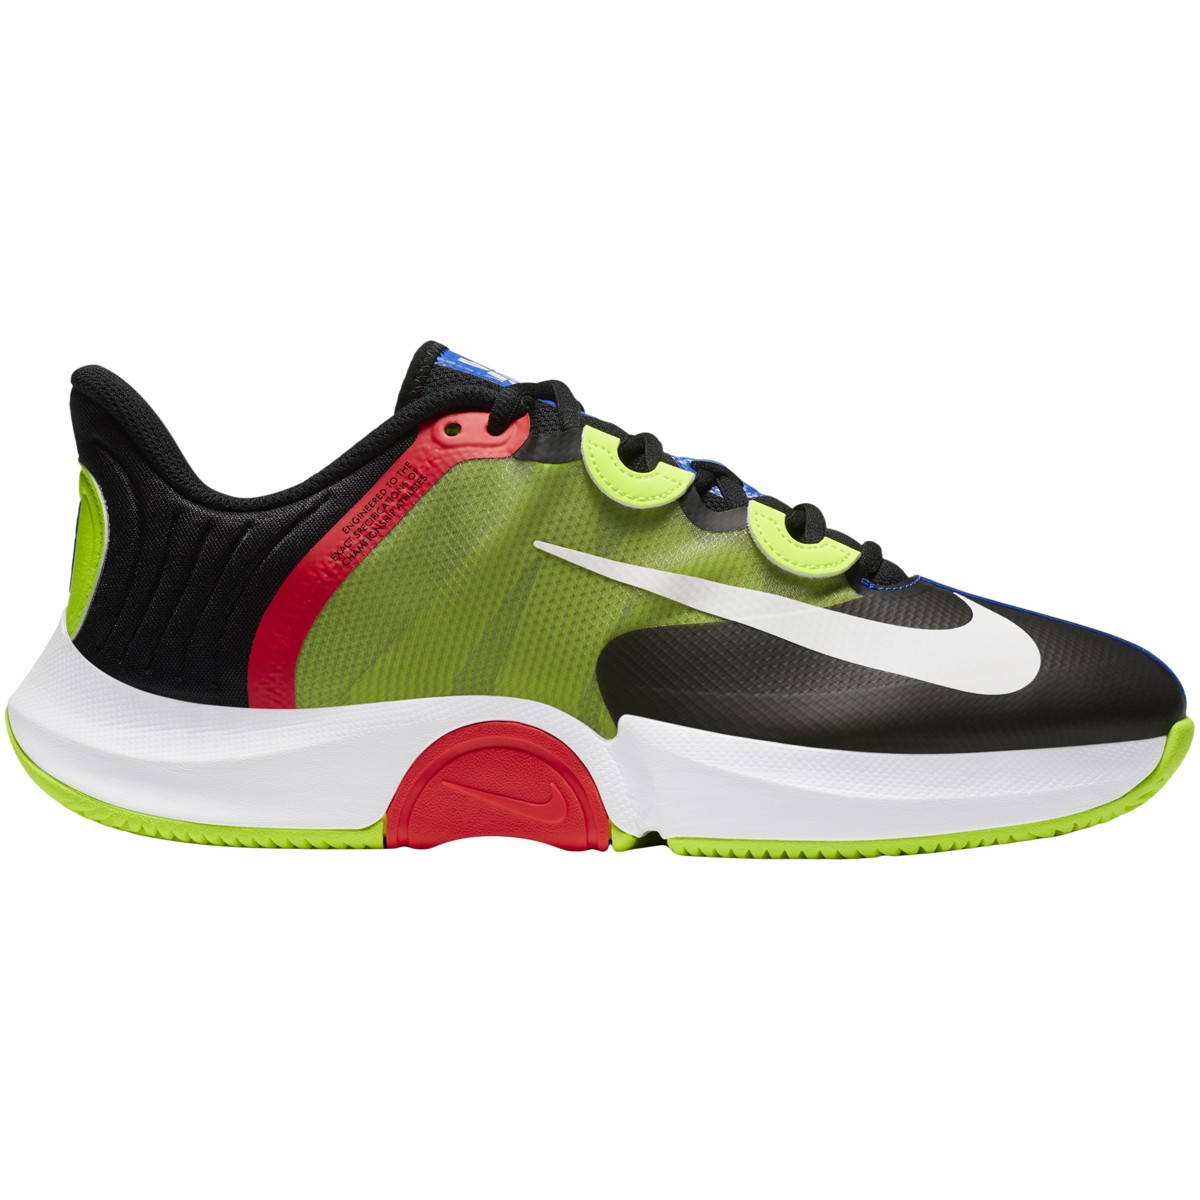 Chaussures Nike Air Zoom GP Turbo Toutes Surfaces - Chaussures ...